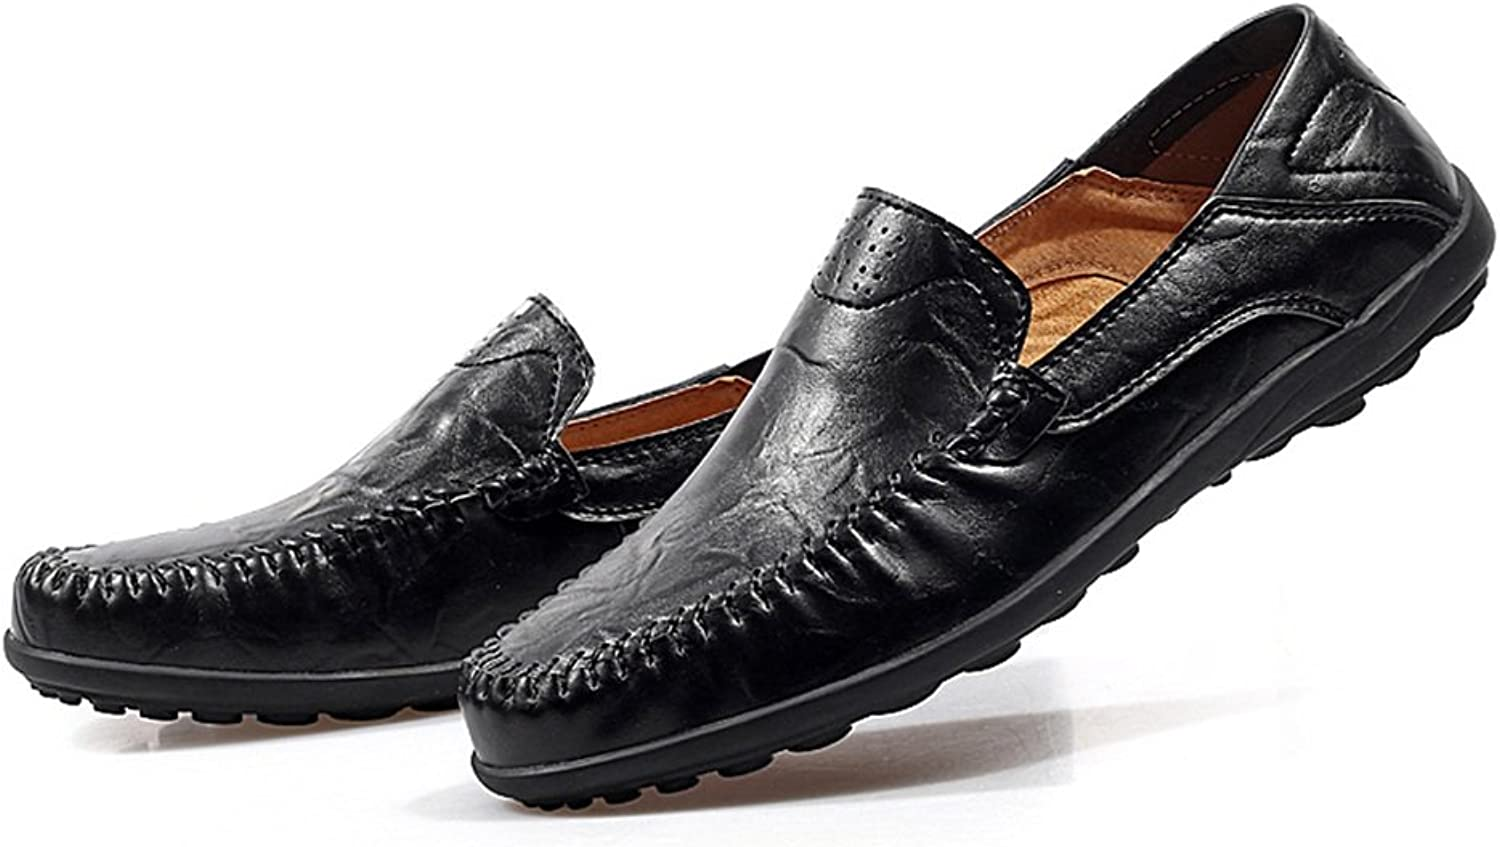 FeiNianJSh Men's Classic Flat Heel shoes Loafer Slip On Slouch Vamp Fashion Business shoes Leisure Casual shoes